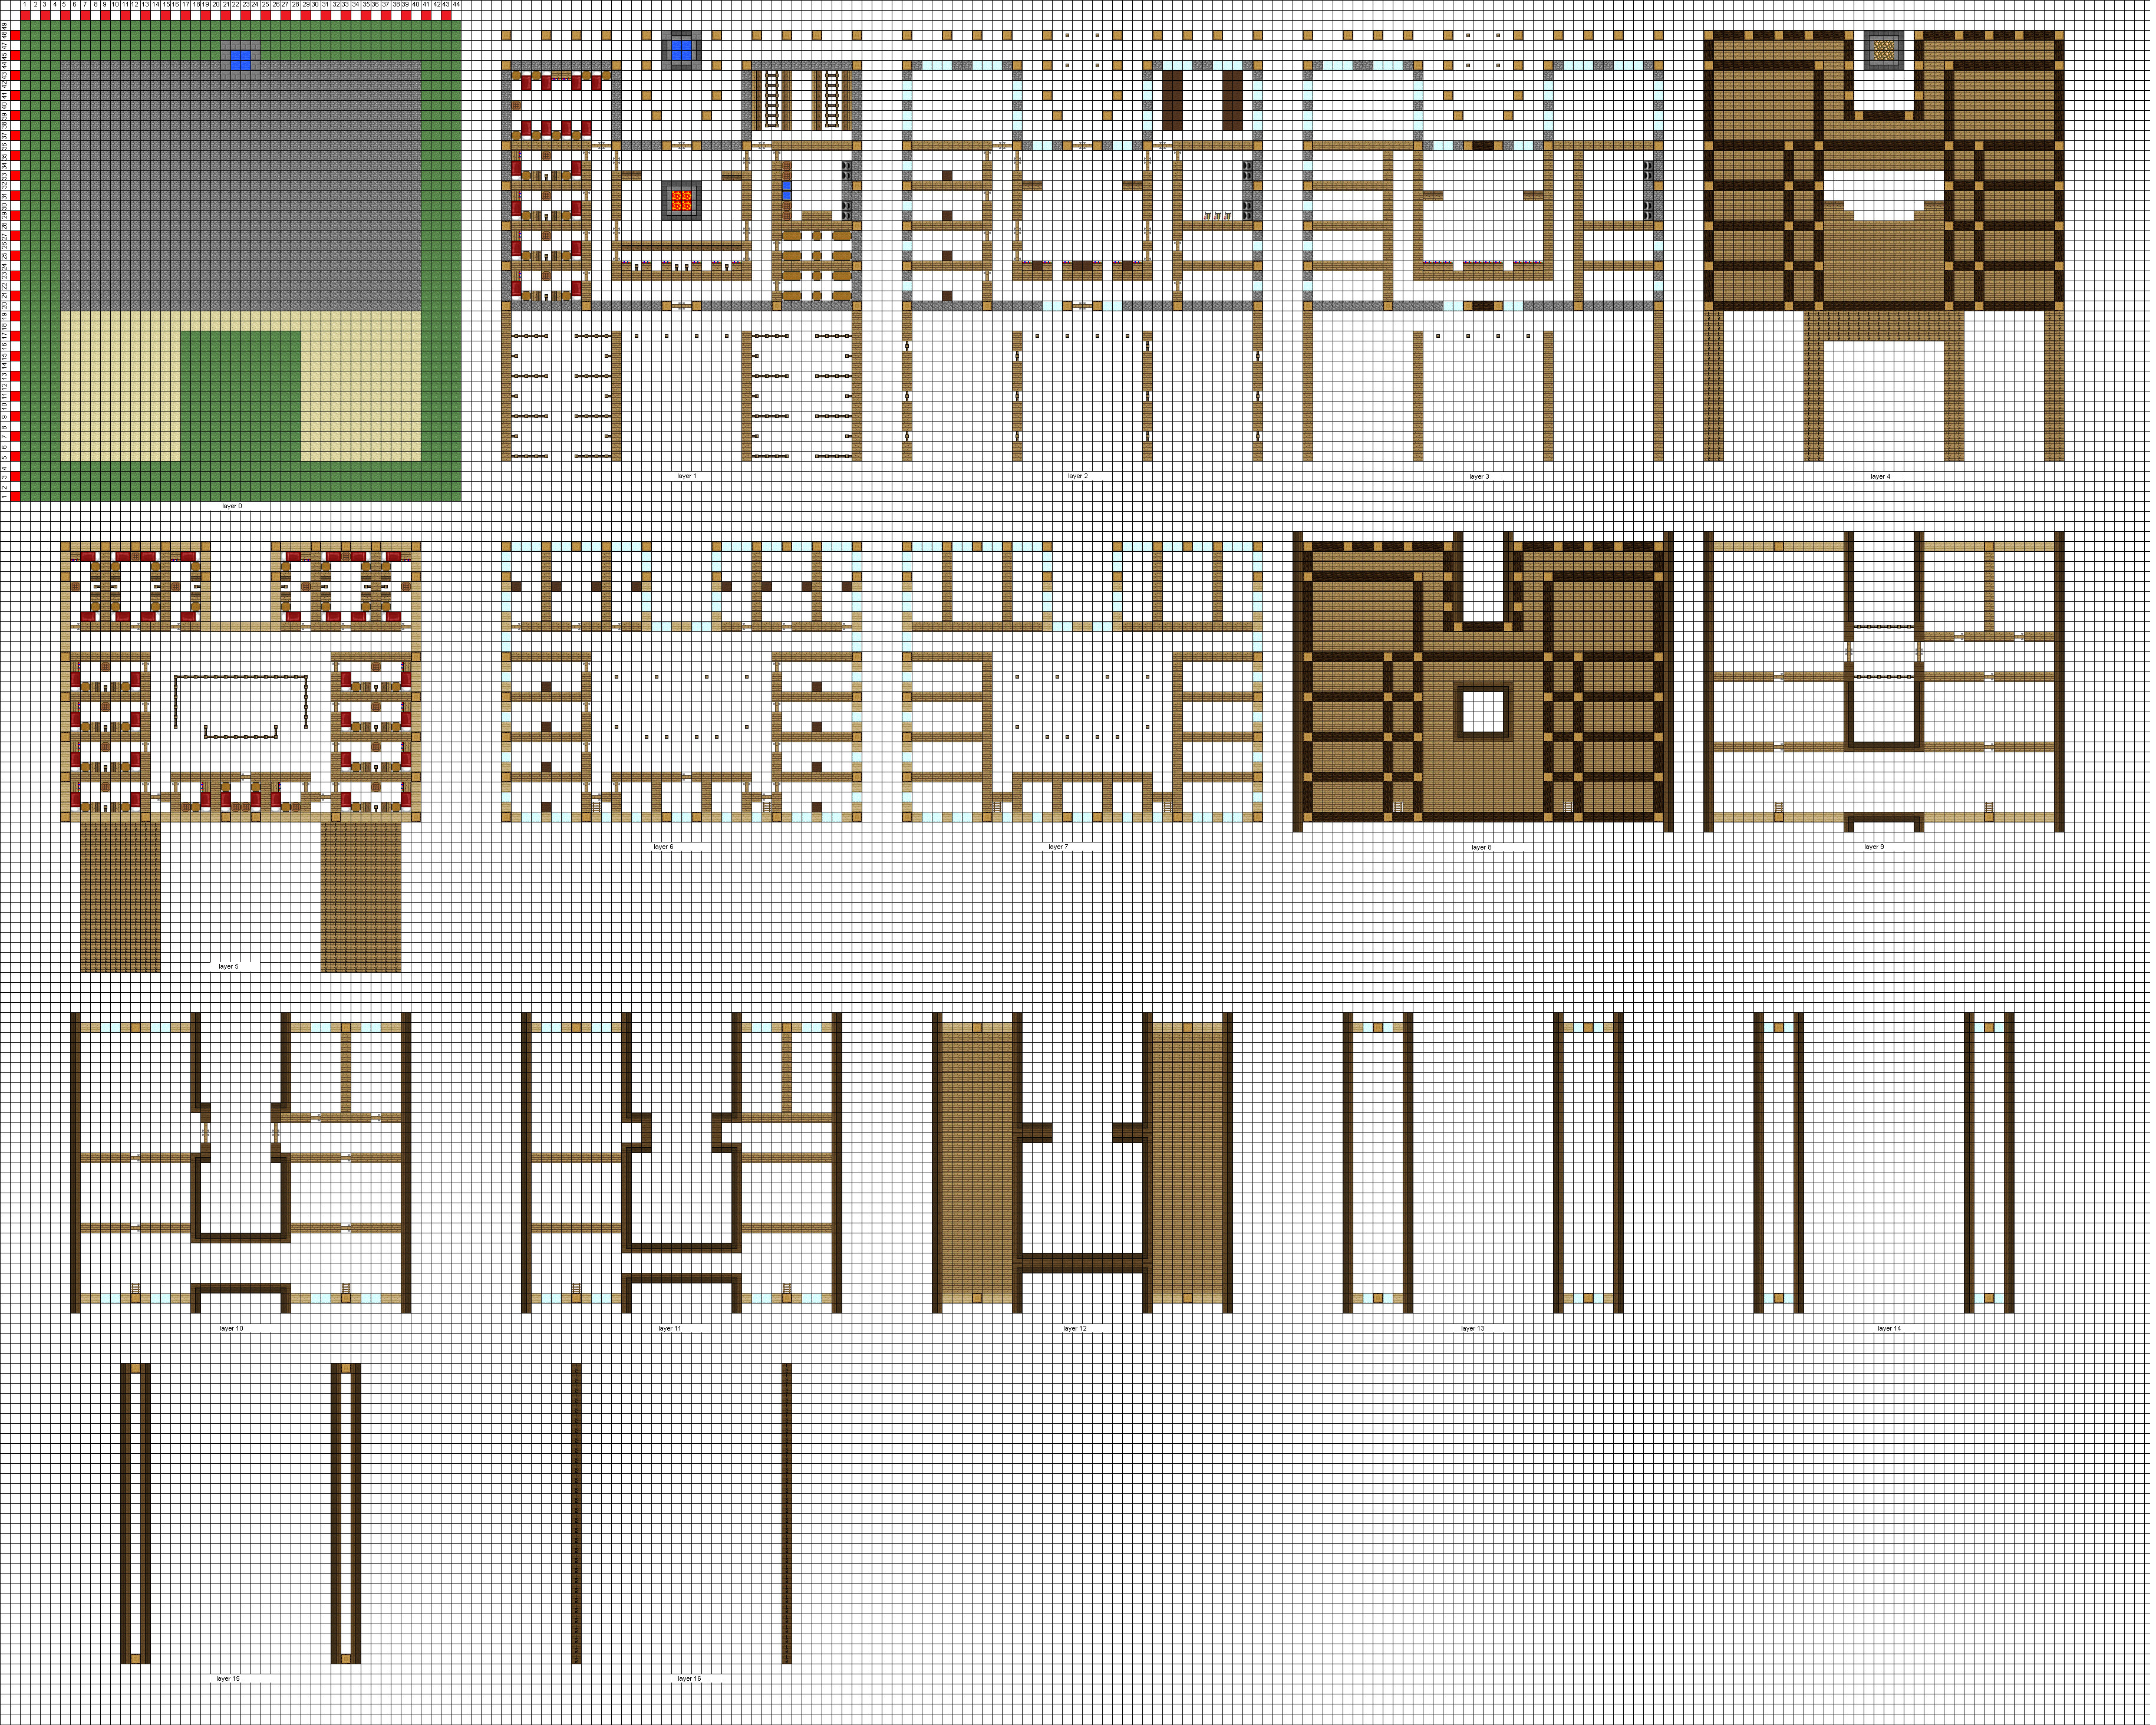 minecraft_large_inn_floorplans_wip_by_coltcoyote-d6rmjff Minecraft Block House Plan on minecraft city plans, minecraft village plans, minecraft building plans,